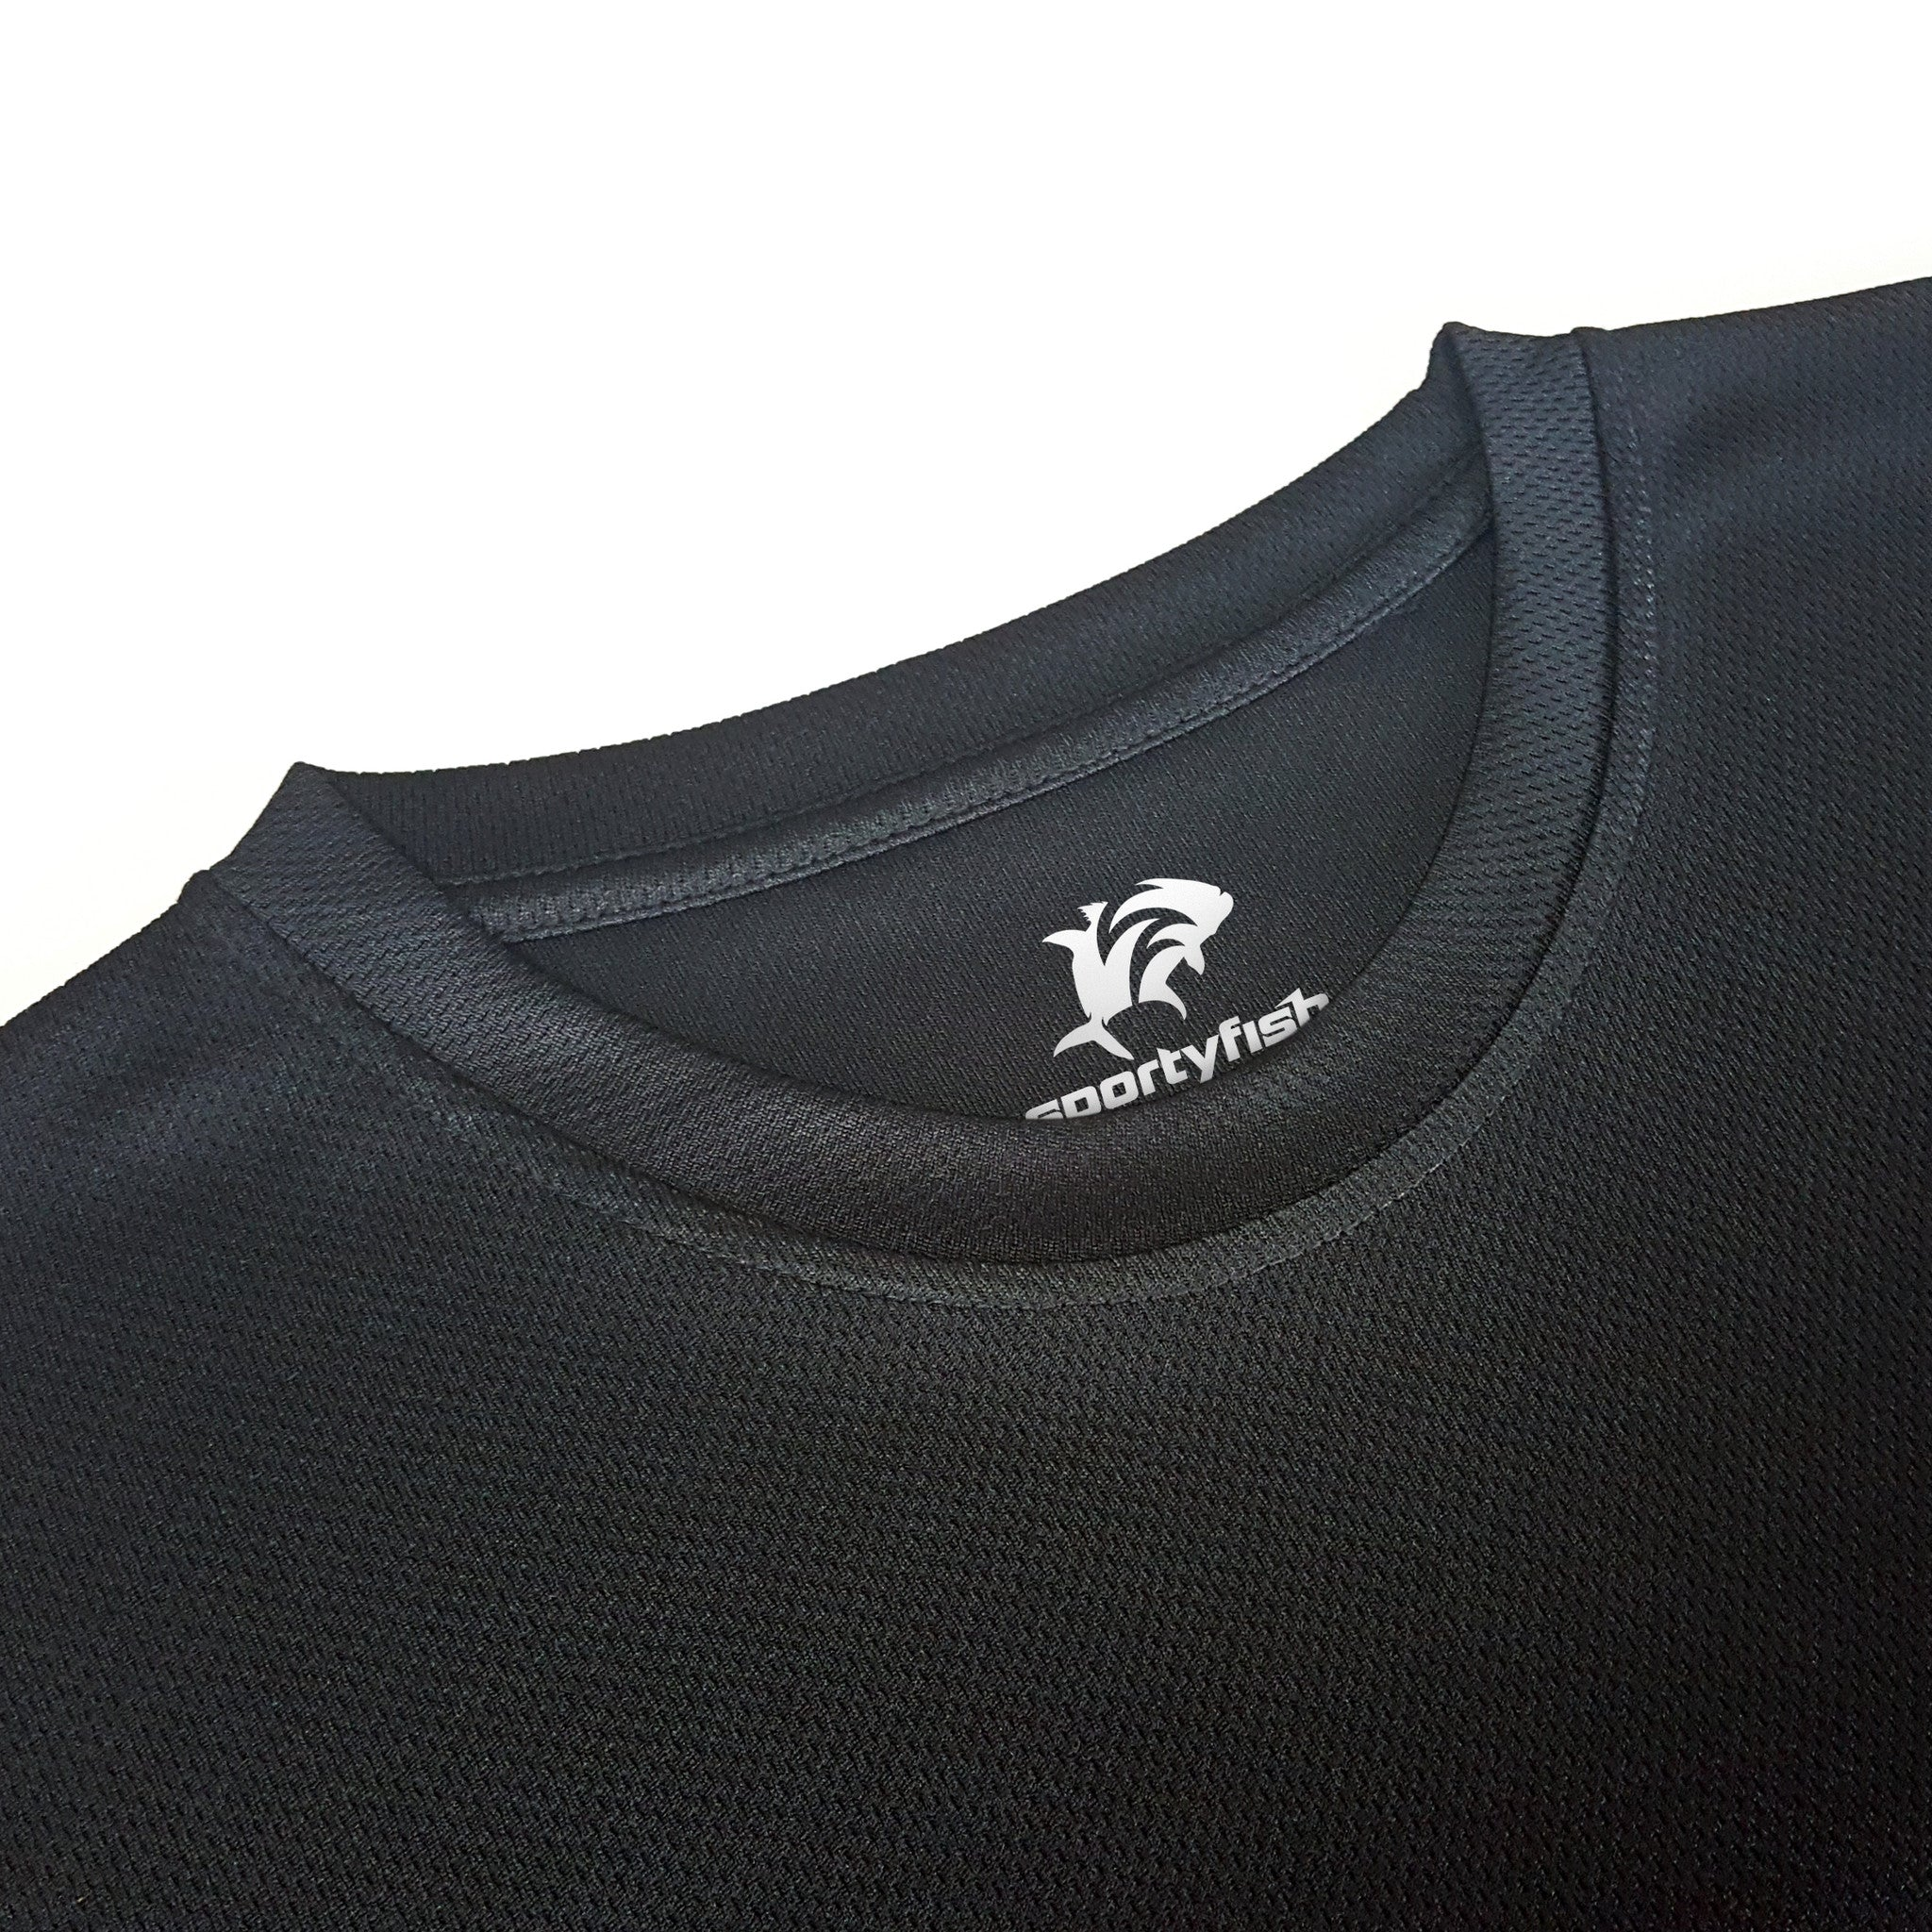 SportyFish Black Series black t-shirt: Northern Pike close-up view 3